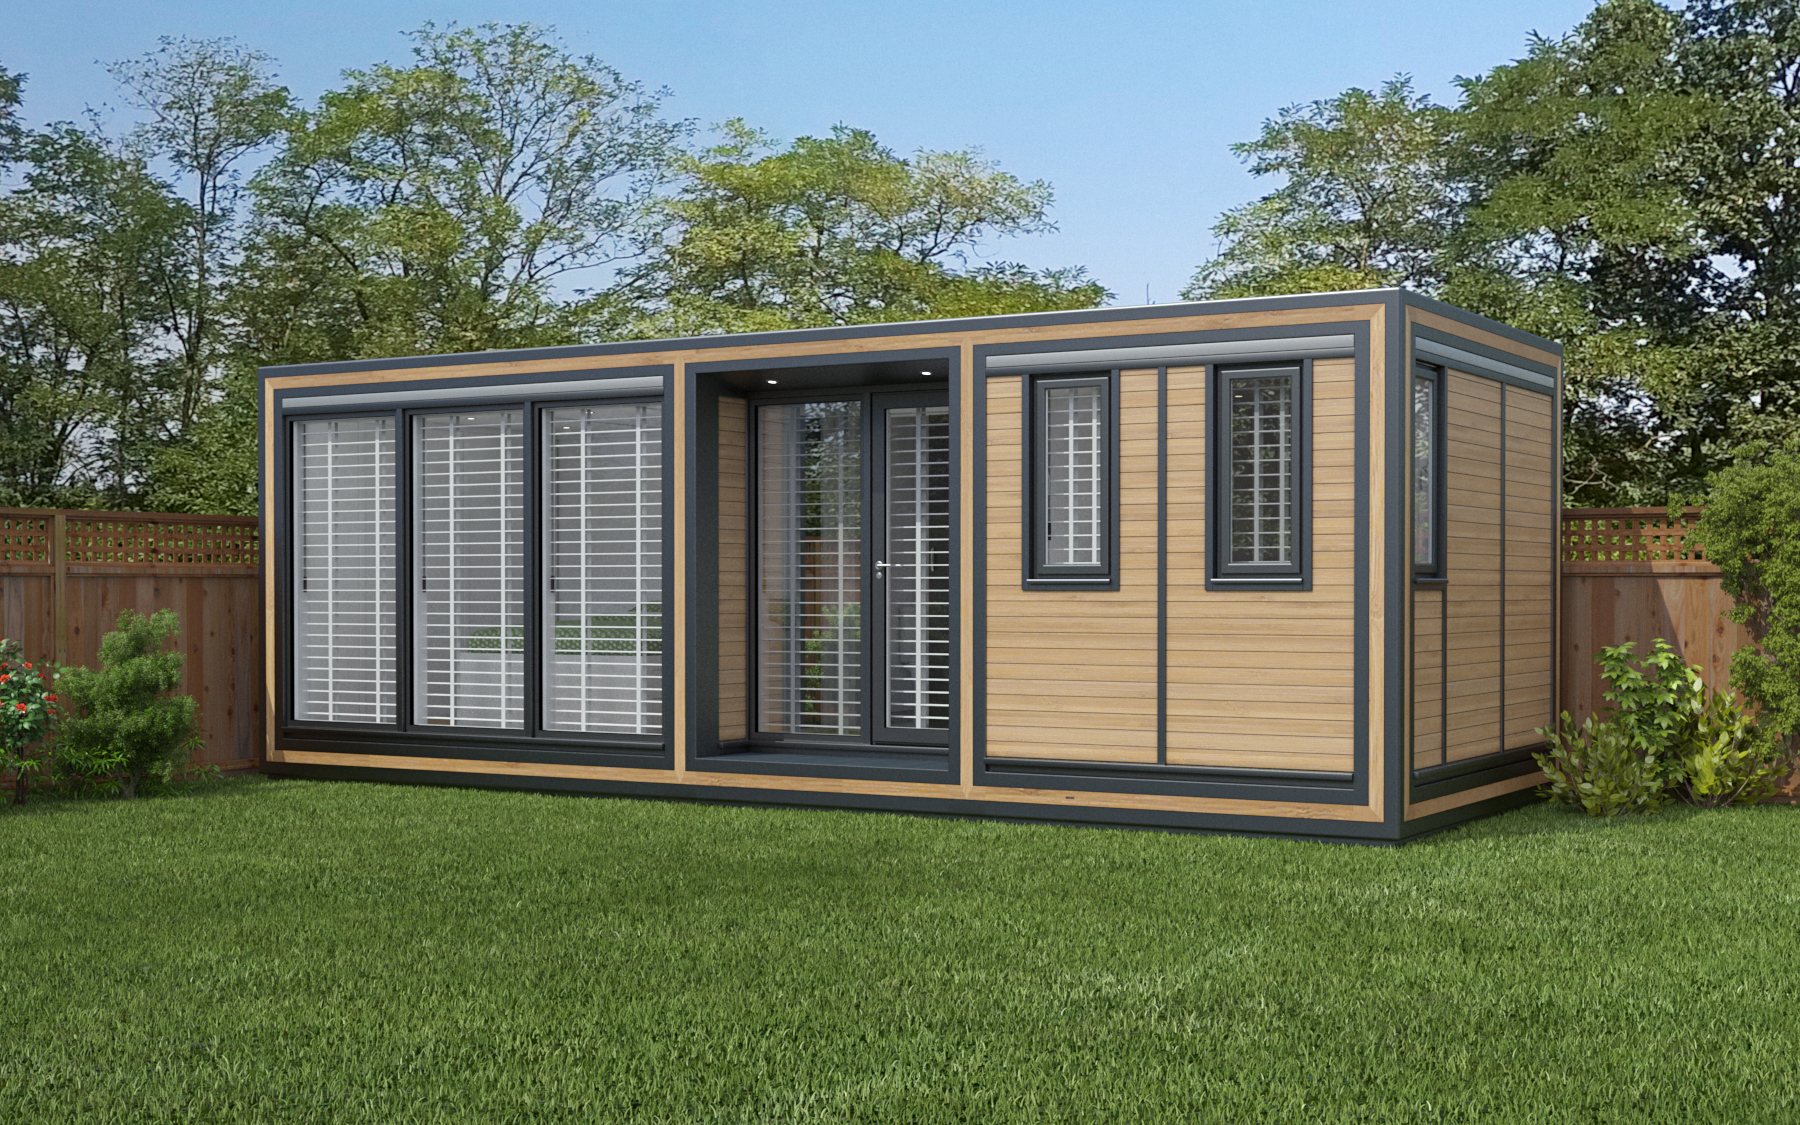 ZEDBOX 725  (7 x 2.5)  Internal Size: 7472 x 2720  External Size: 7942 x 3190  Bed Options: Single or Double  Kitchen Options: Micro Kitchen or Kitchen  Wet Room Options: Yes  Portico: Yes  Price:  £33,000    Optional Extras    Request Zedbox Catalogue